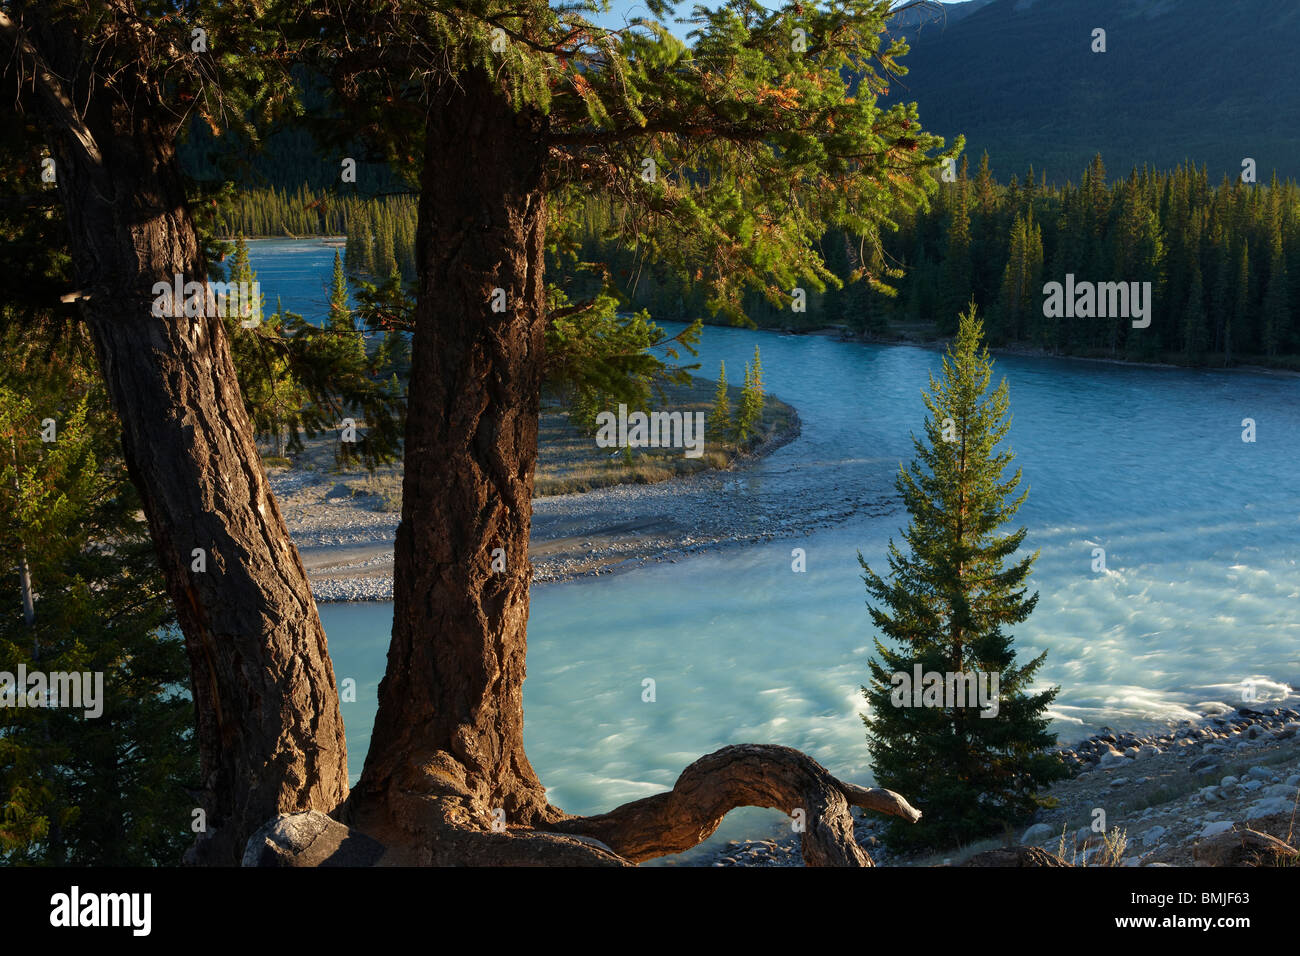 a tree by the Athabasca River nr Jasper, Jasper National Park, Alberta, Canada - Stock Image